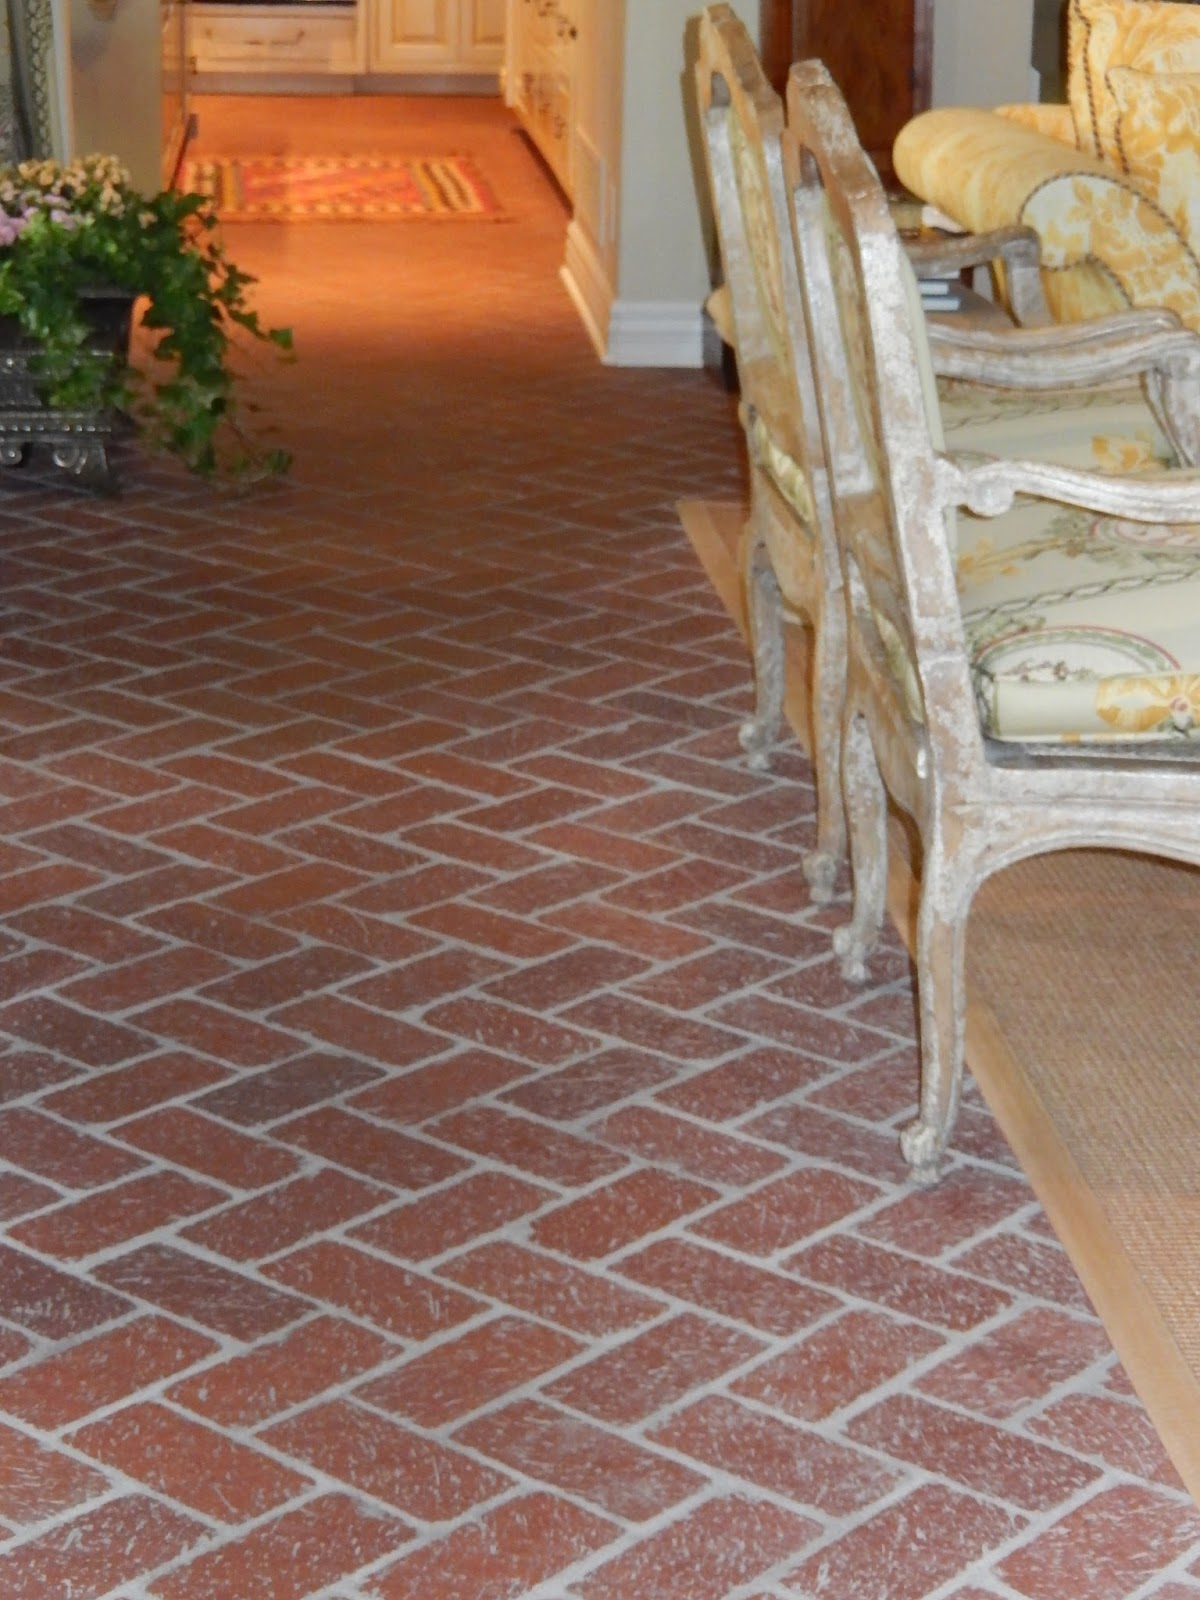 The French Tangerine  brick flooring